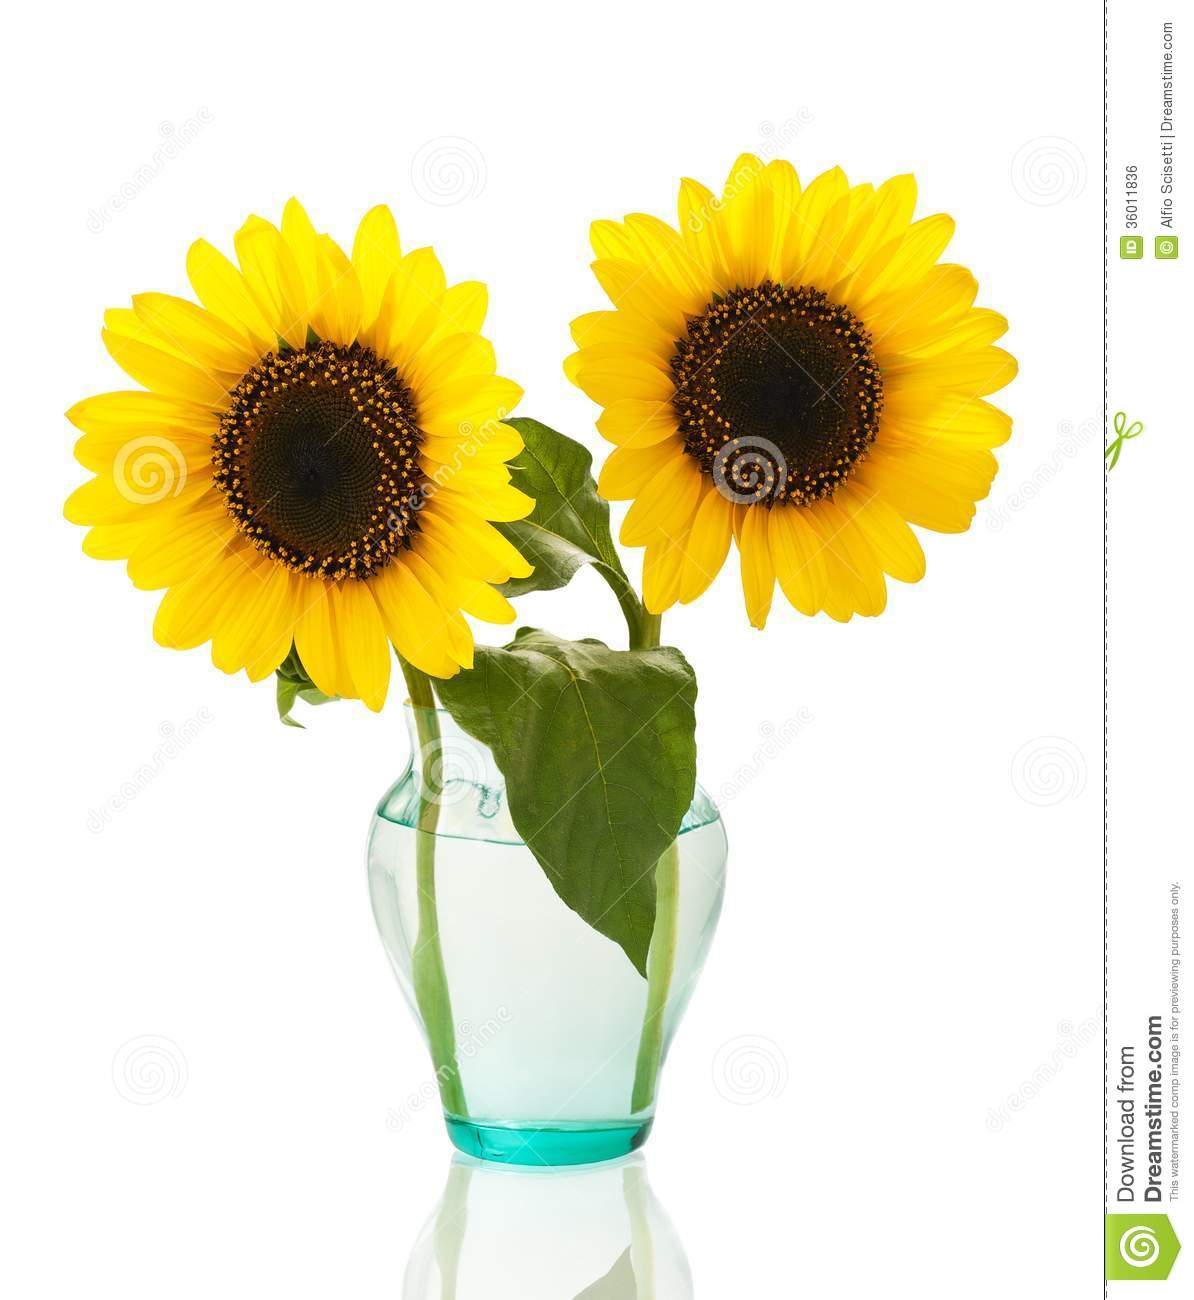 Sunflowers In Vase Stock Photo Image Of Natural